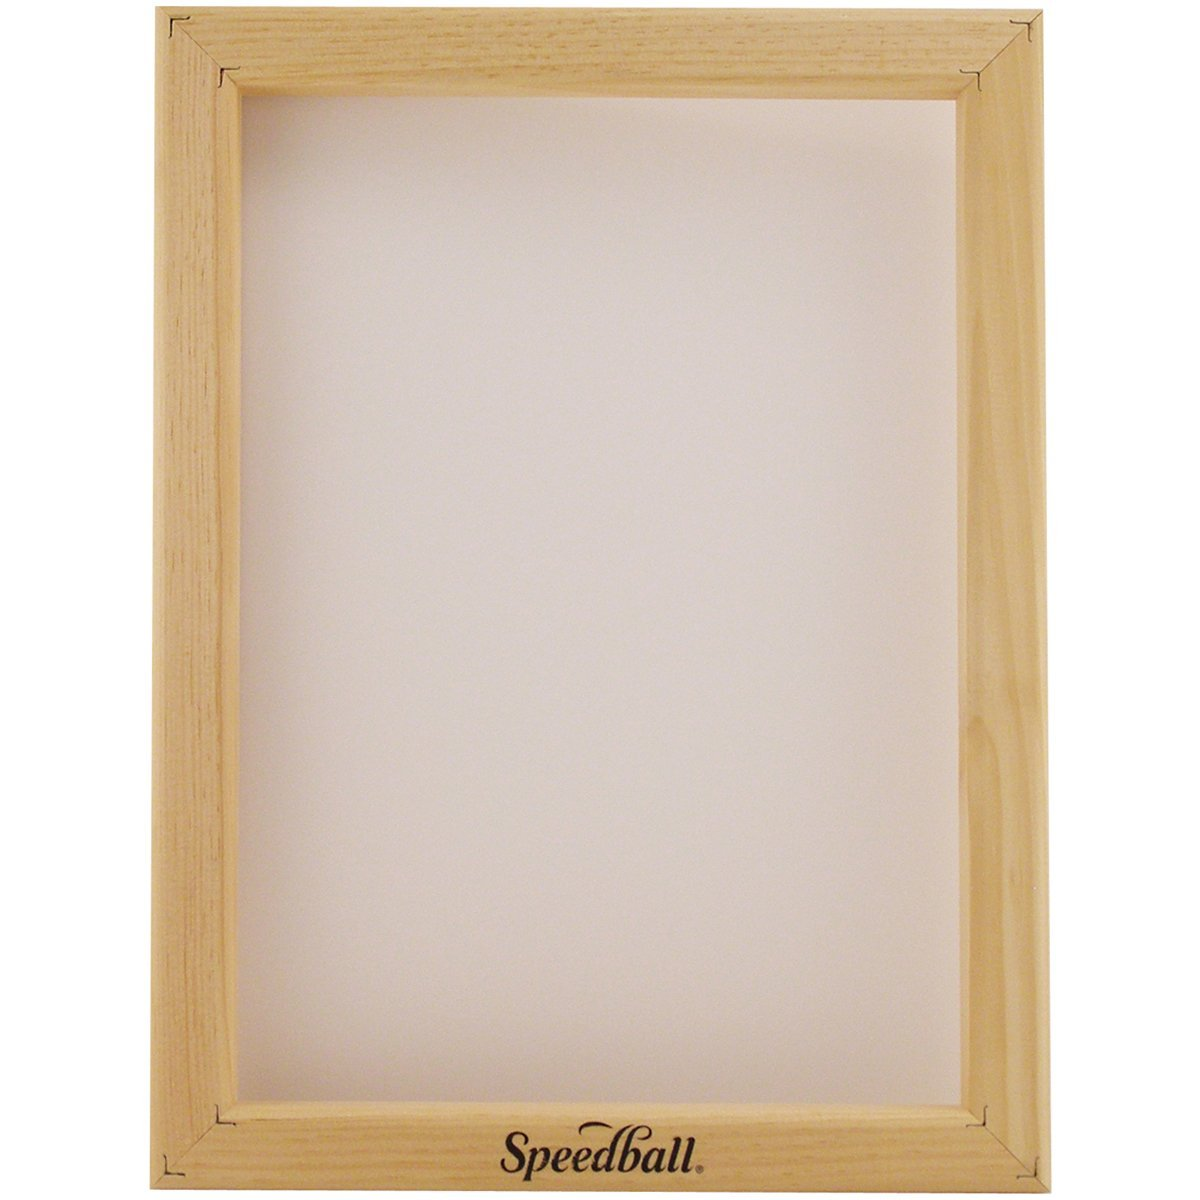 Speedball 110 Monofilament Screen Printing Frame, 10-Inch by 14-Inch